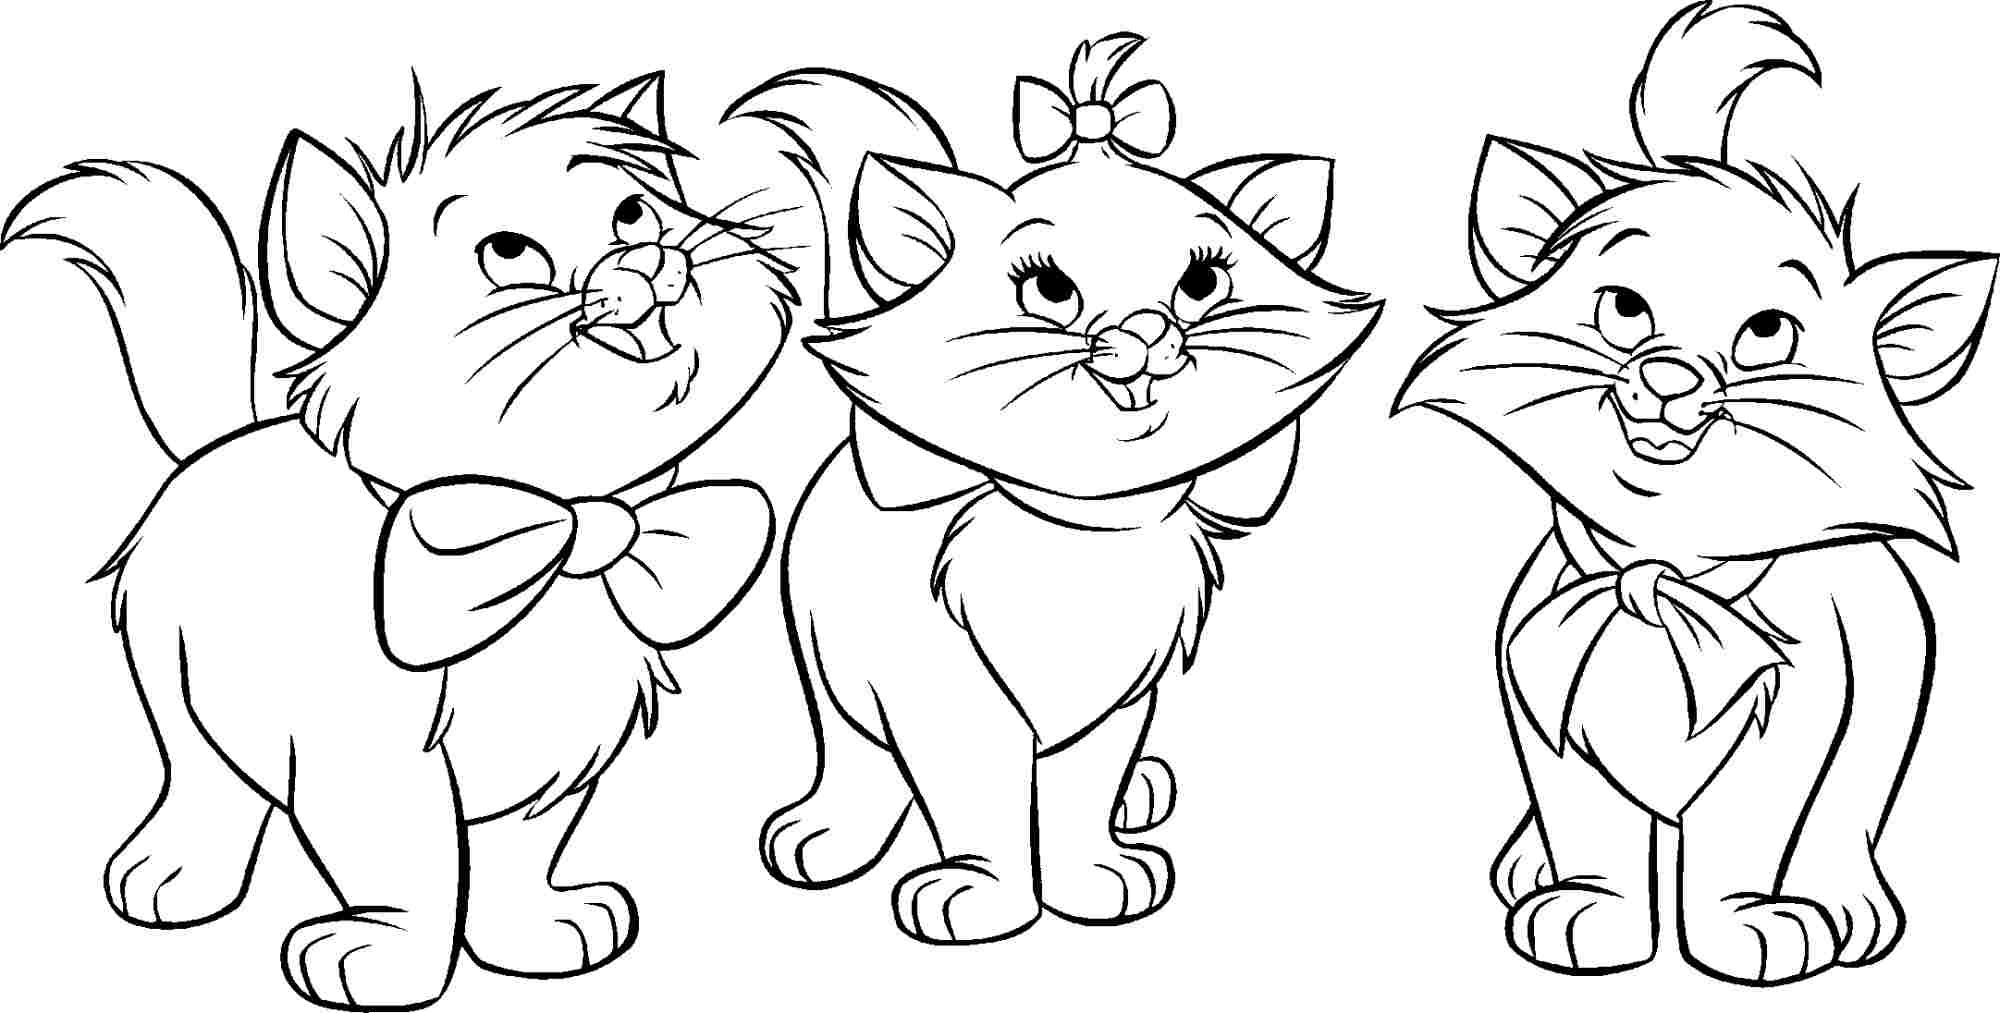 This is a graphic of Exhilarating aristocats coloring page